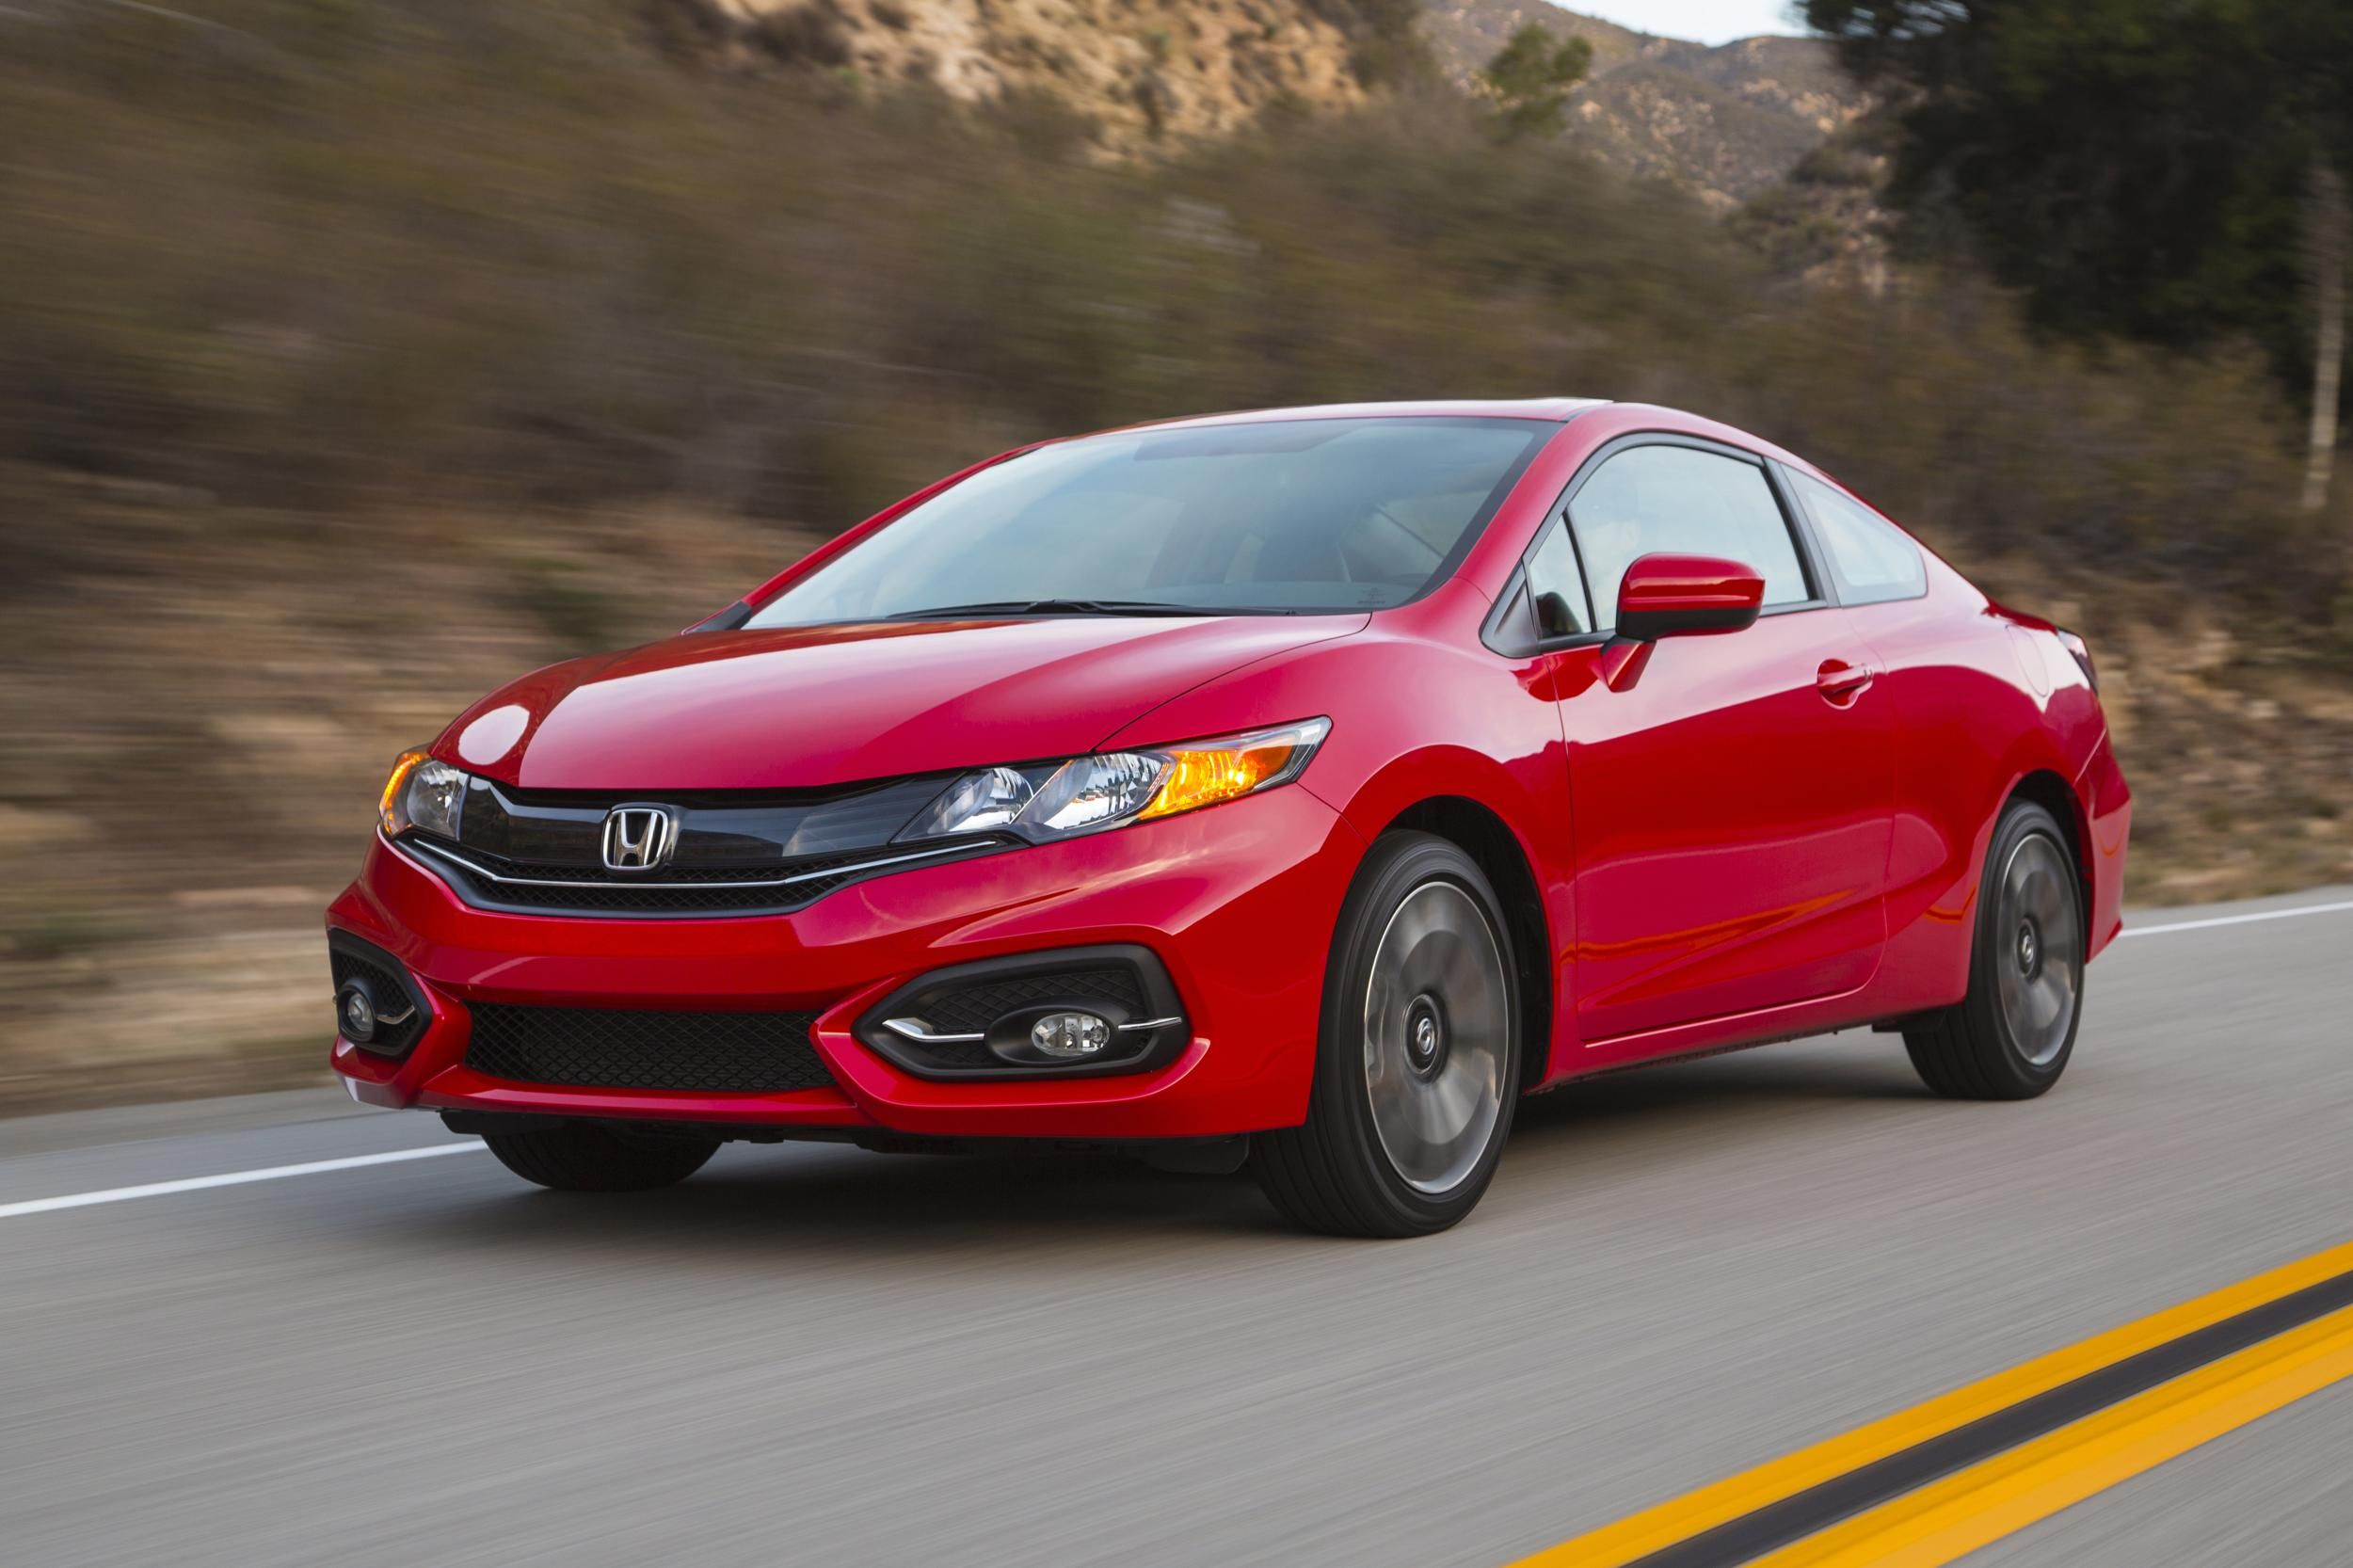 2015 Honda Civic Review And Price   For Your Very Great Appearance, It Will  Be